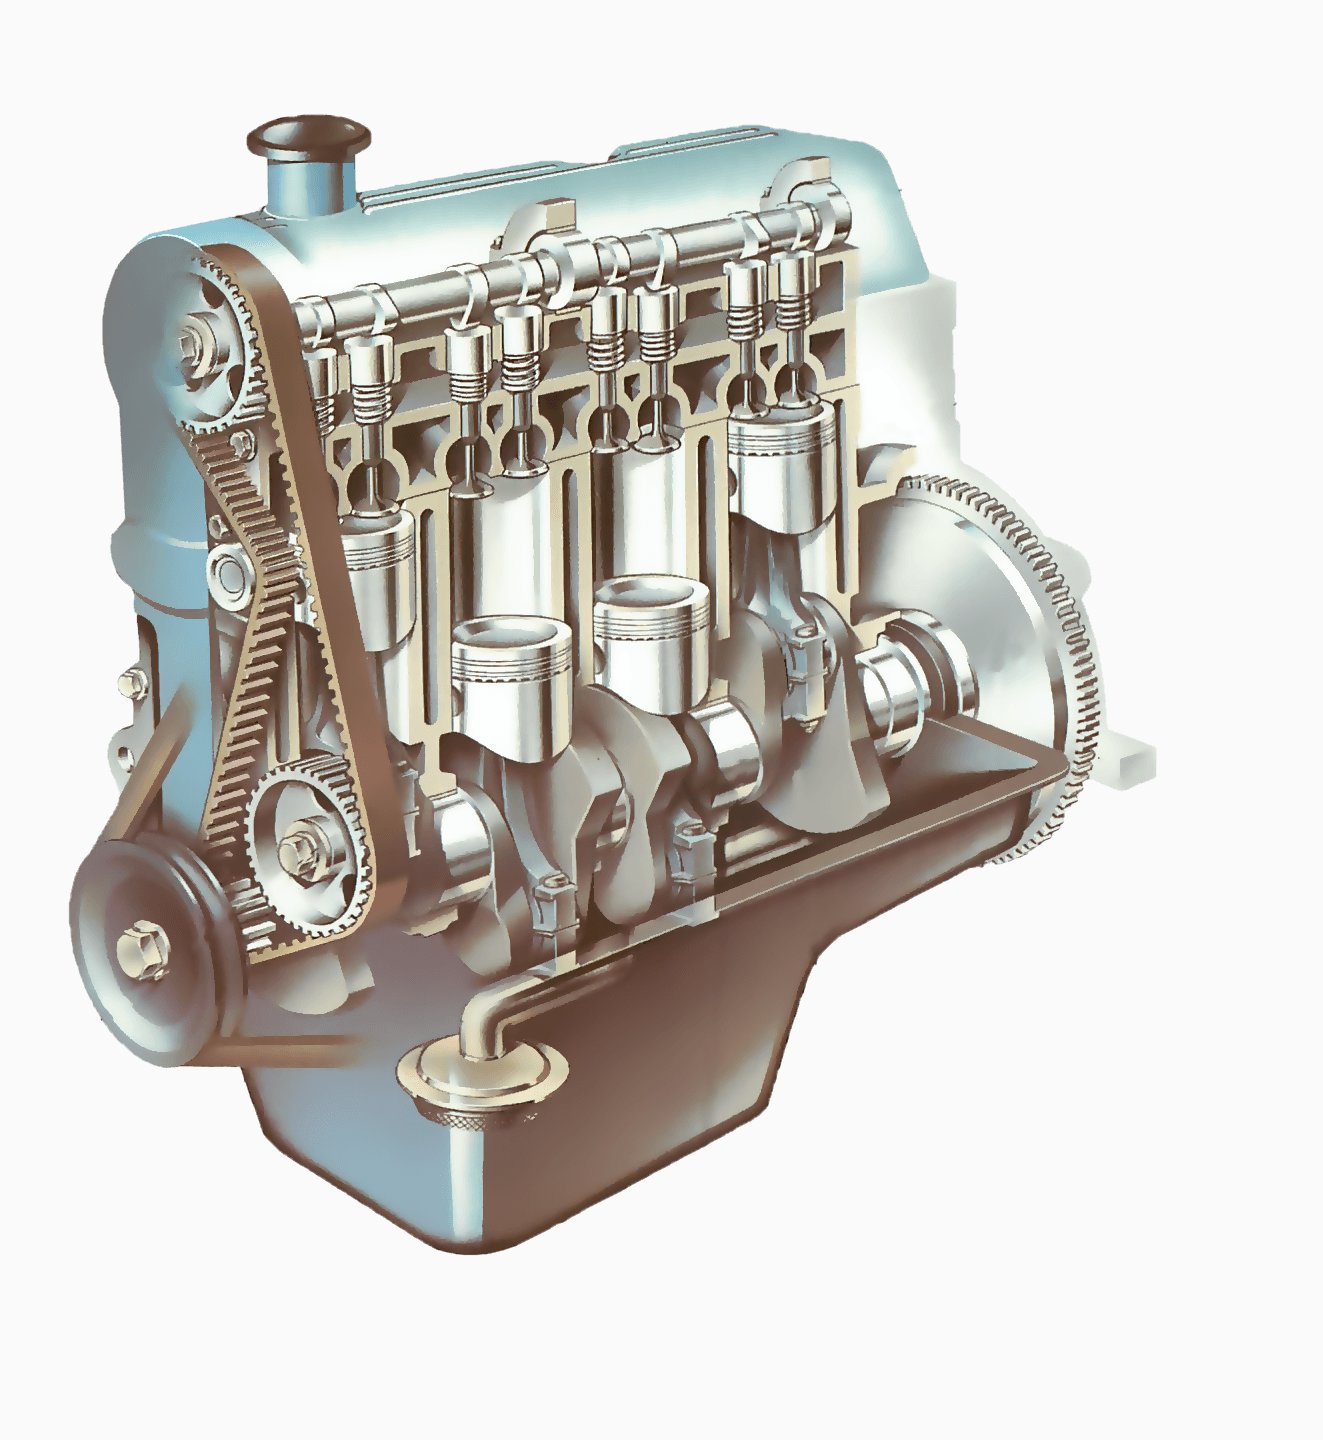 The Engine